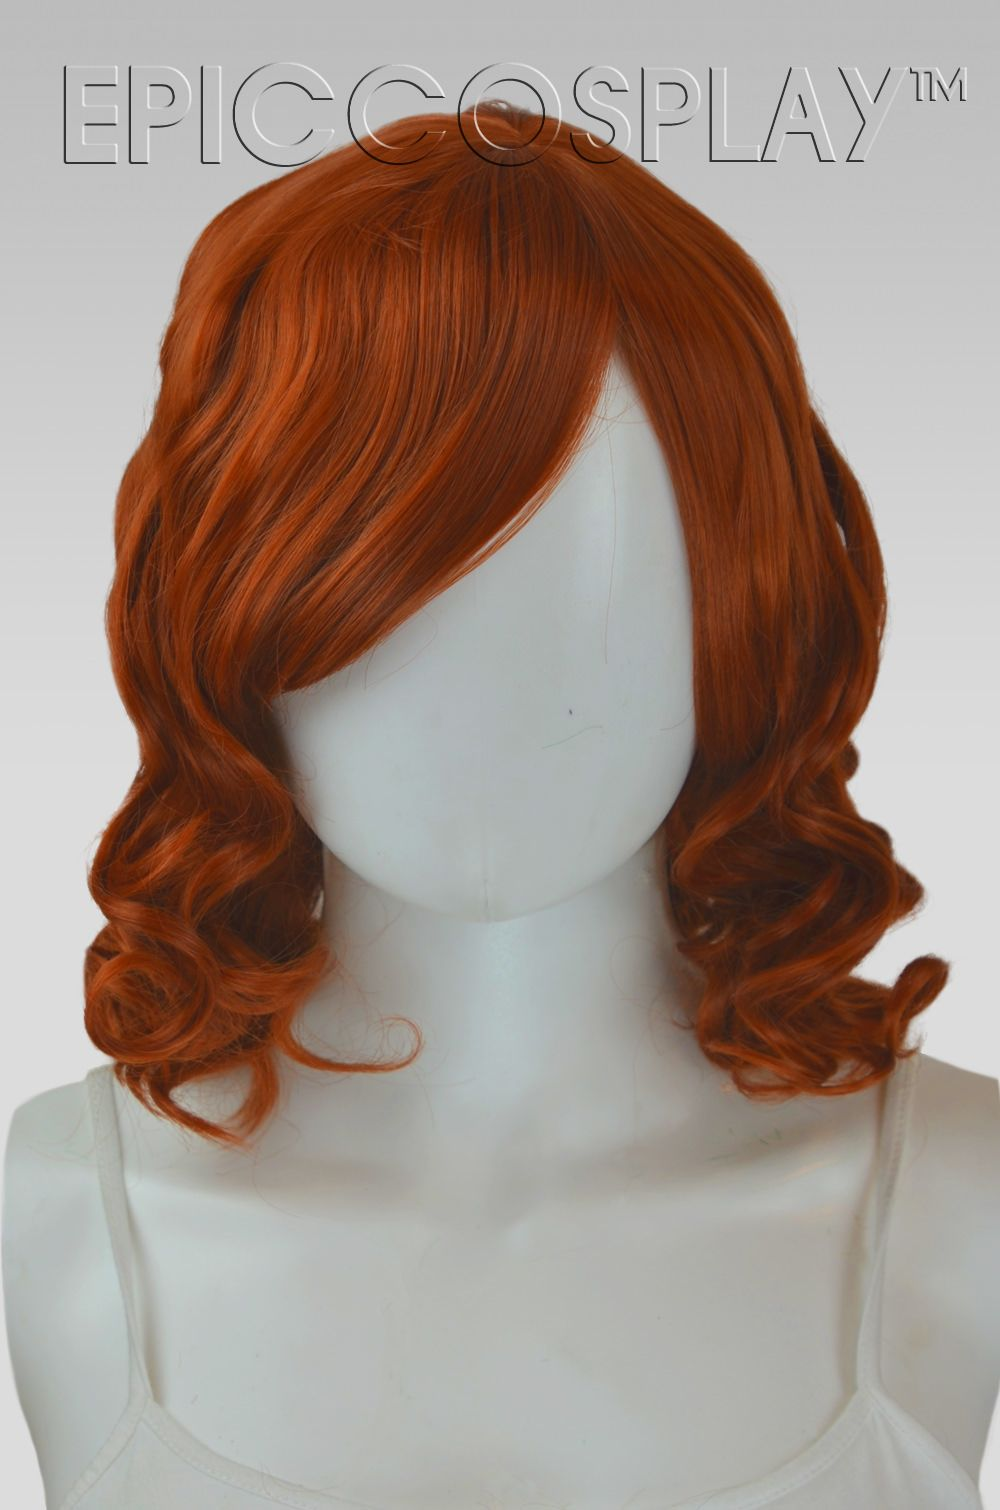 Diana Copper Red Short Curly WigOur Diana wig is the perfect style for anyone seeking bountiful volume and bounce. This Copper Red short curly wig comes pre-sty